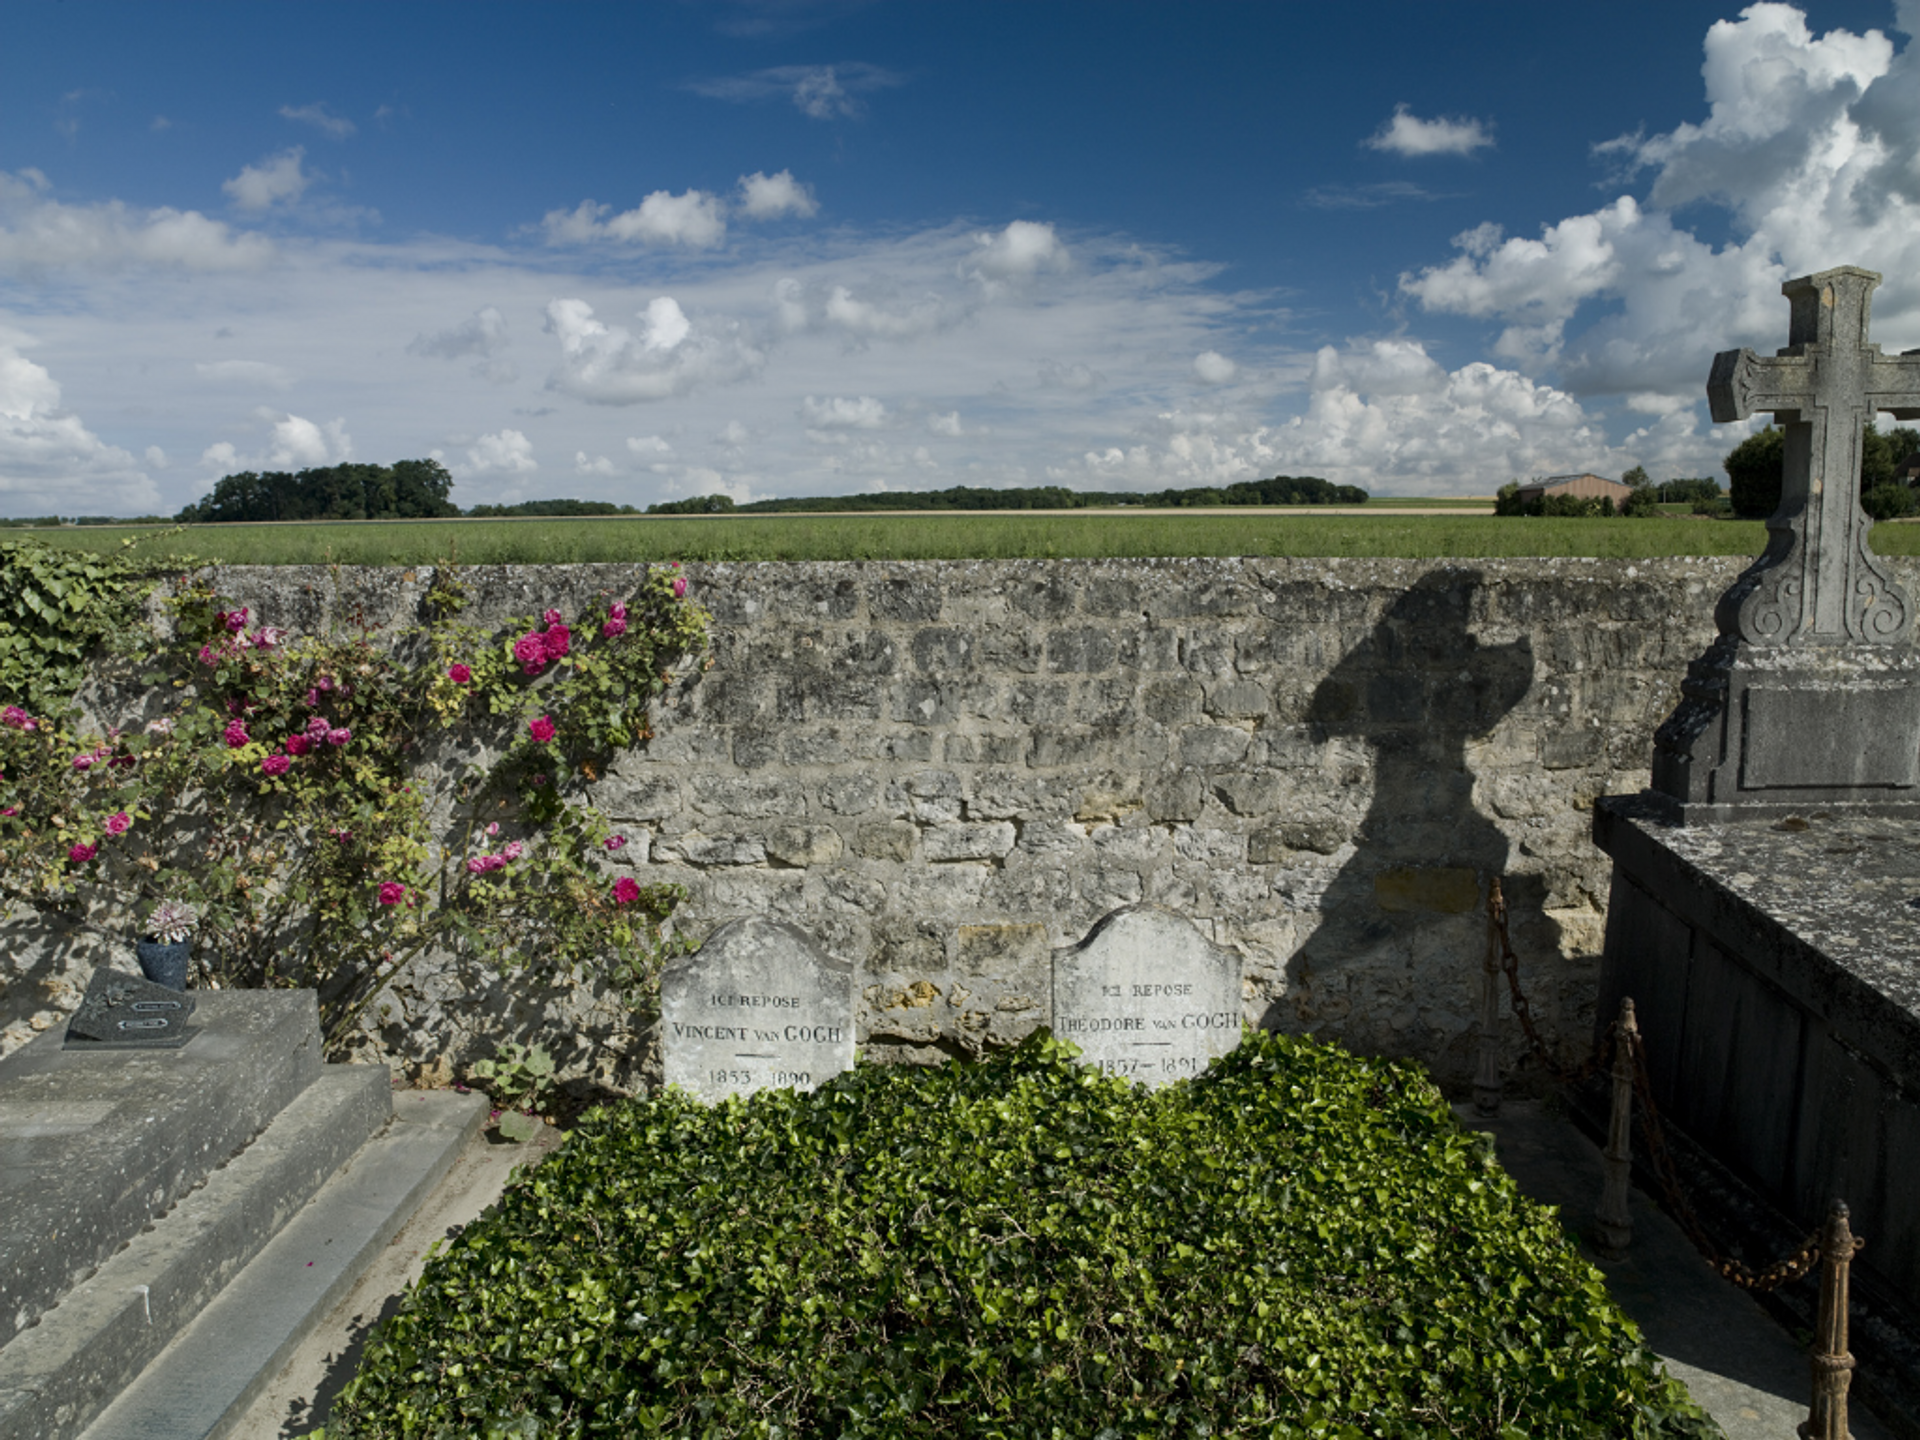 The graves of Vincent and Theo in the cemetery at Auvers-sur-Oise